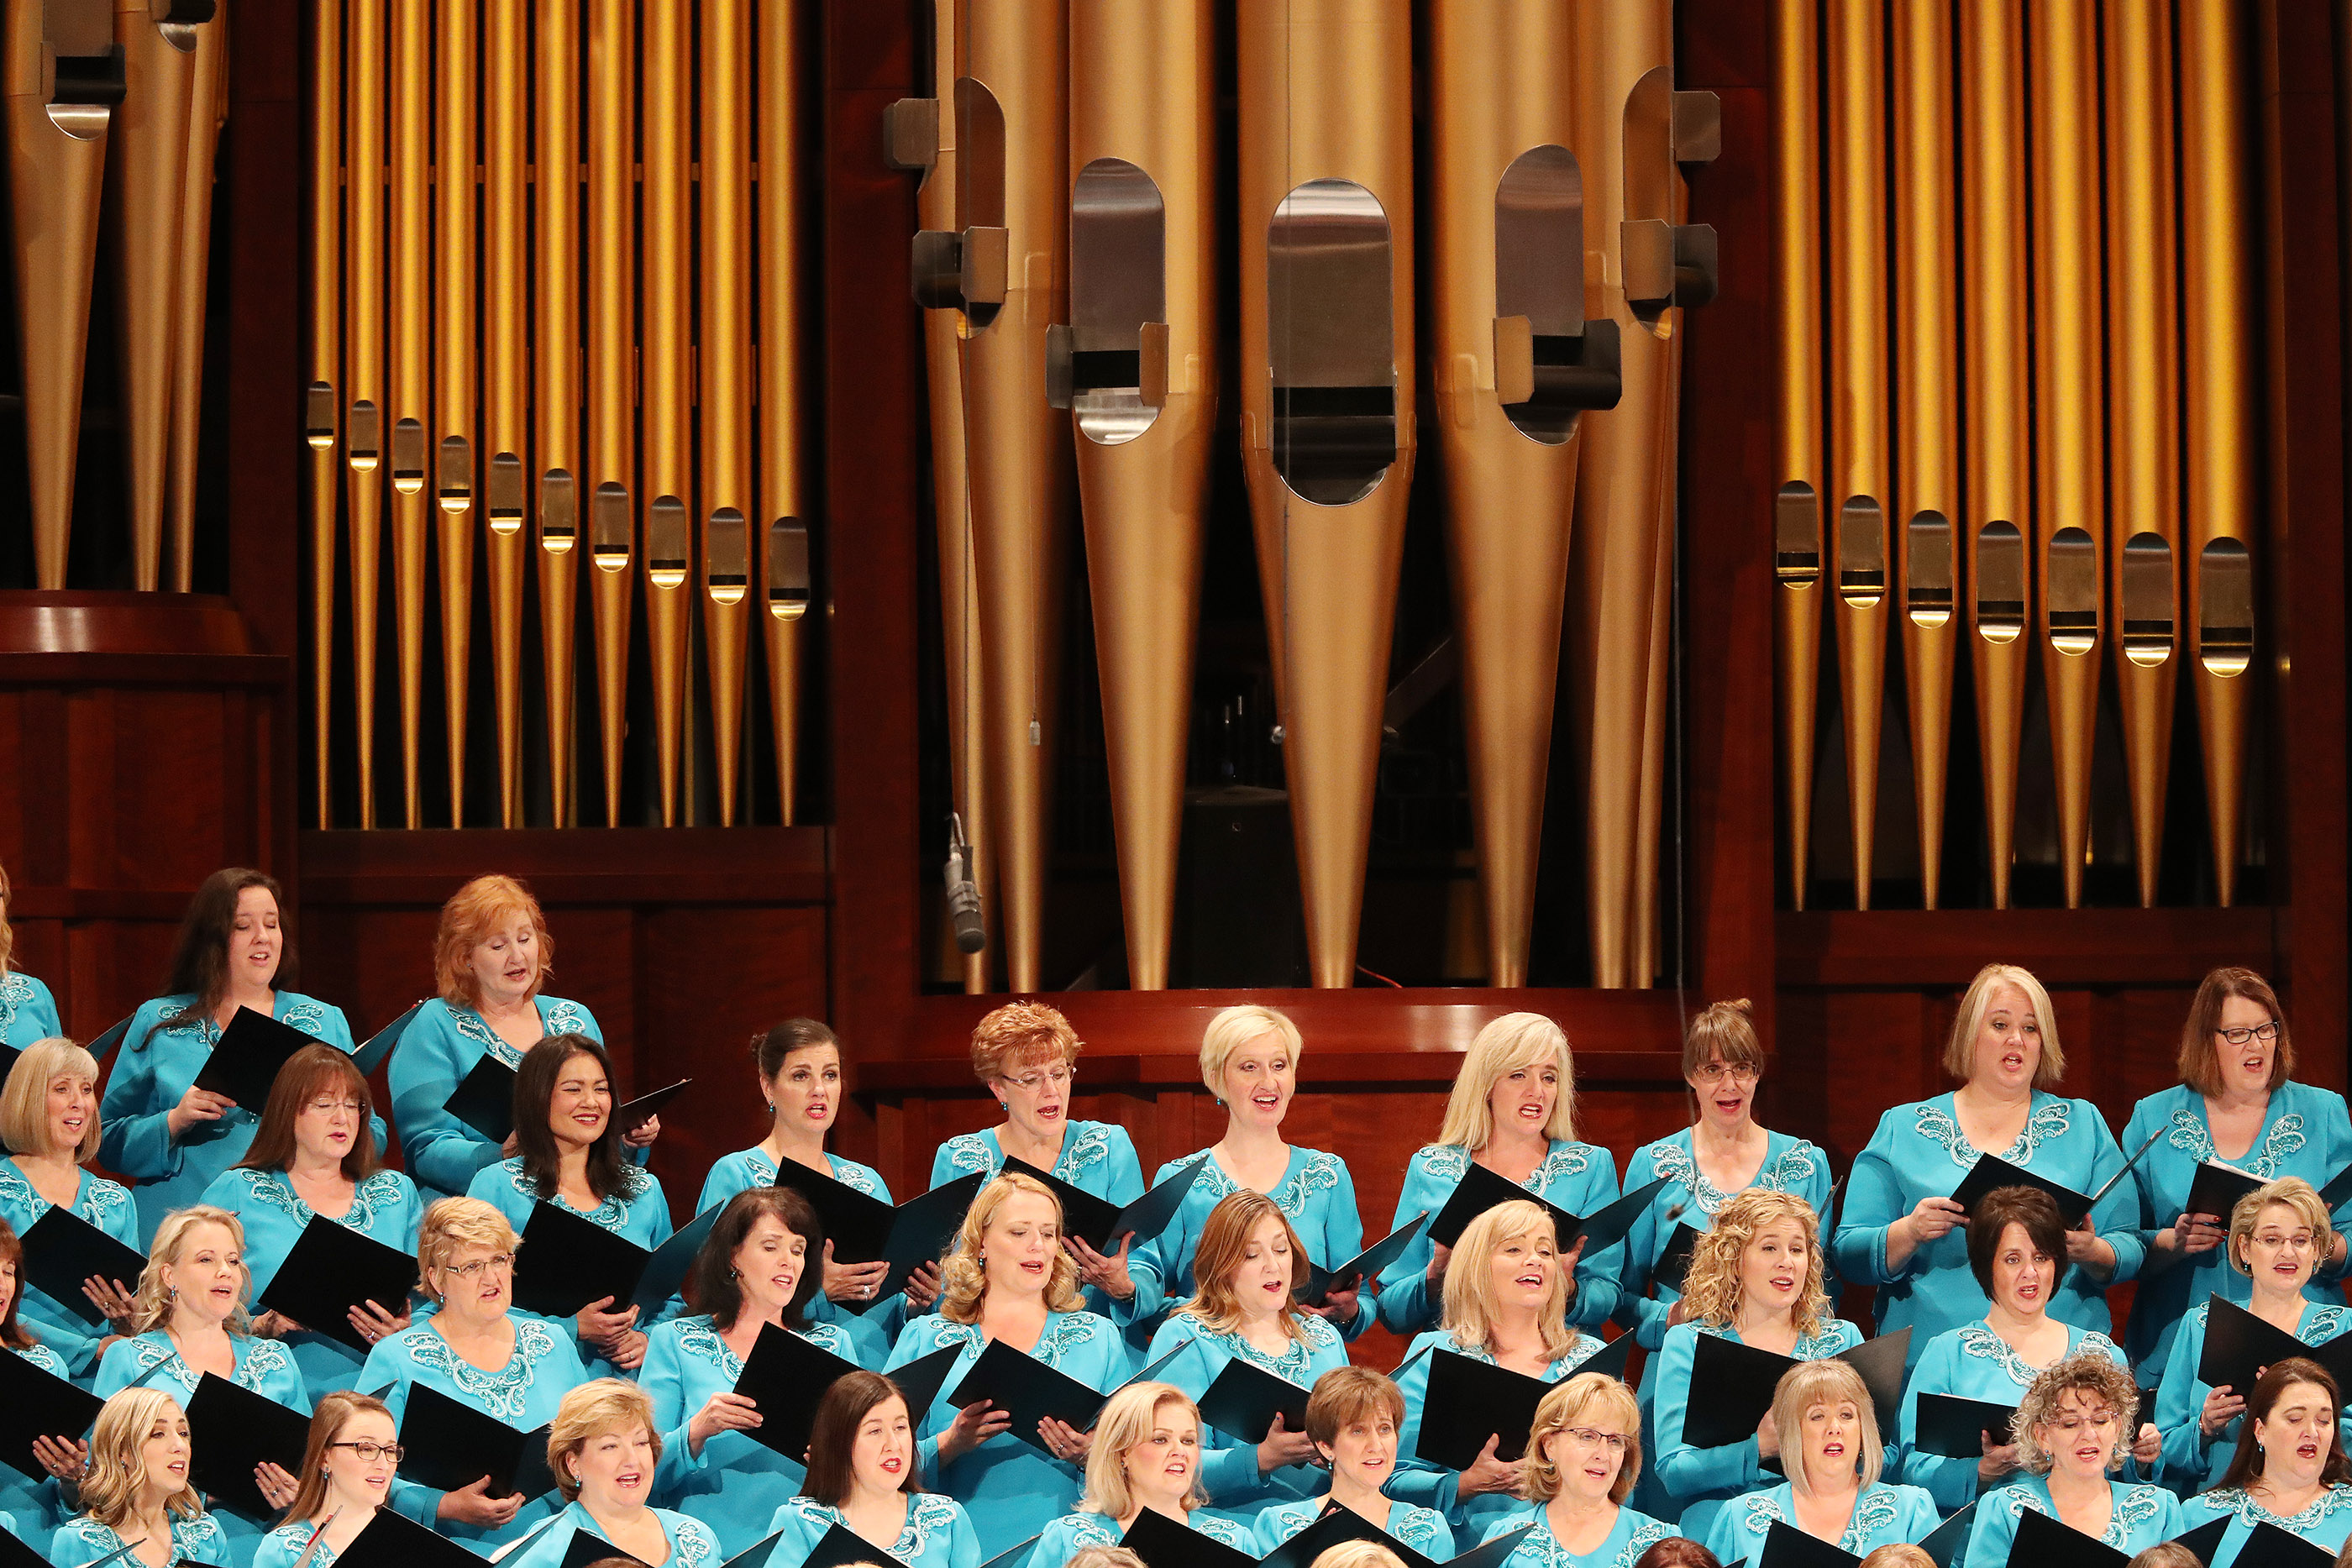 The Tabernacle Choir at Temple Square sings during the Sunday afternoon session of the 188th Semiannual General Conference of The Church of Jesus Christ of Latter-day Saints in the Conference Center in Salt Lake City on Sunday, Oct. 7, 2018.